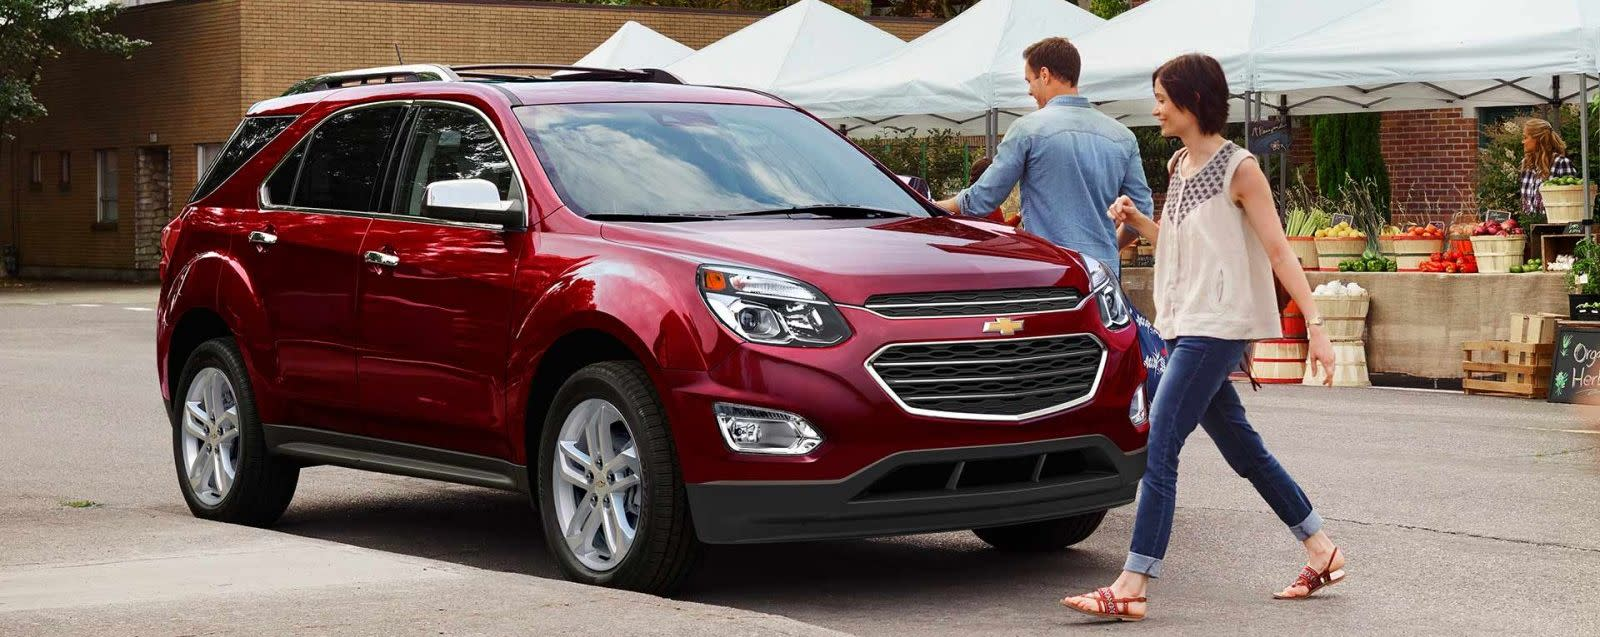 2017 Chevrolet Equinox for Sale near Alexandria, VA